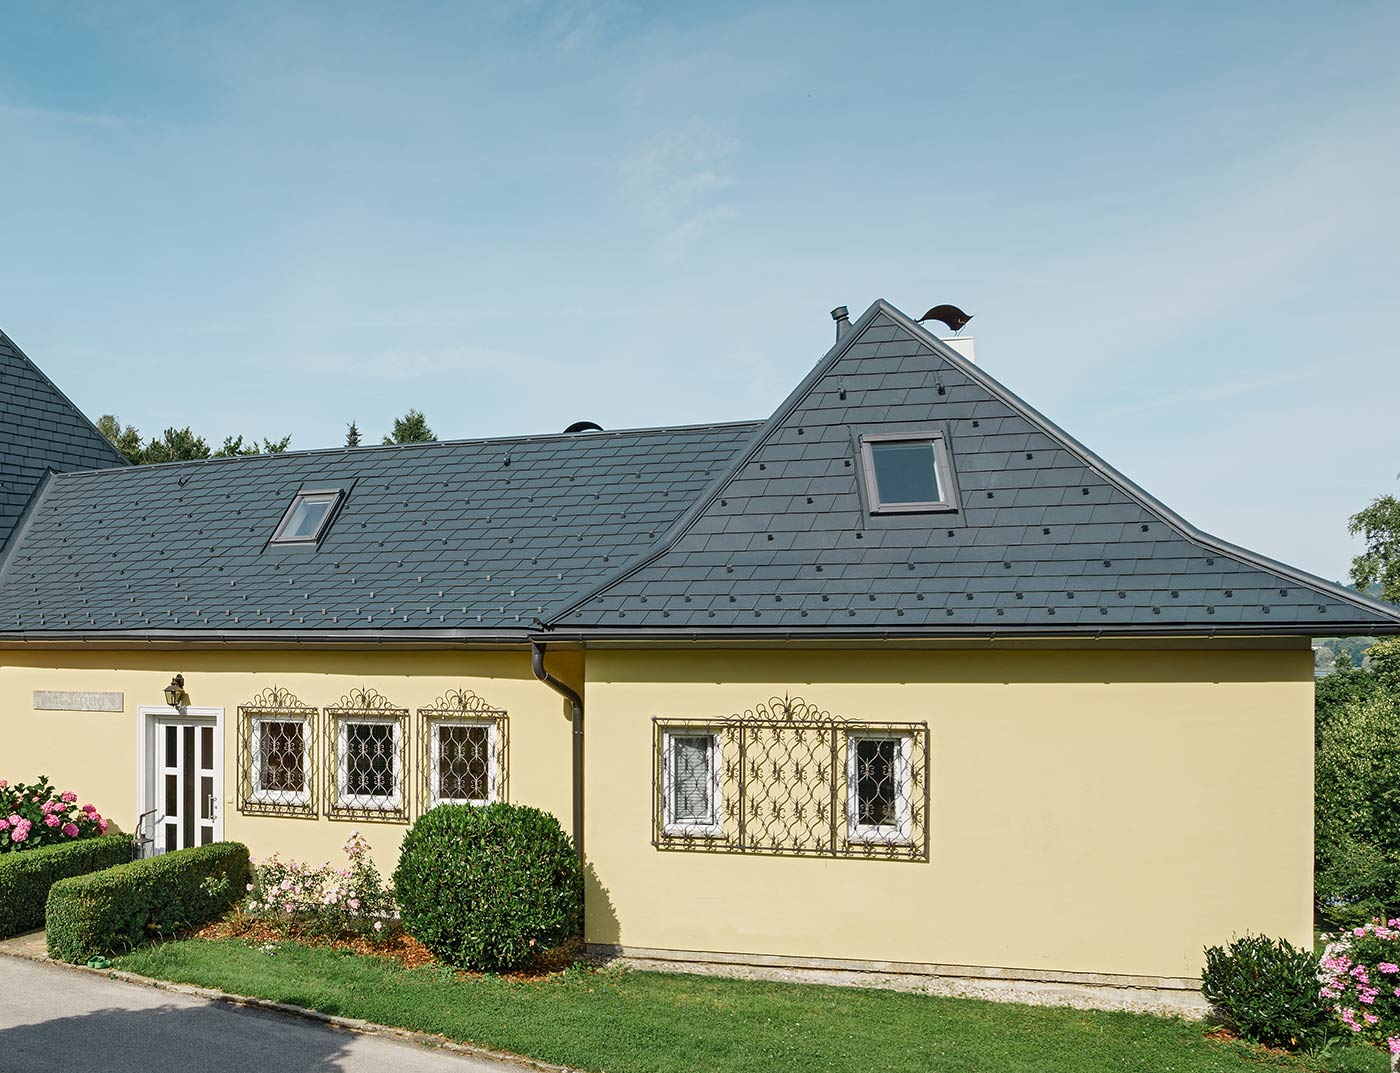 Reference buildings PREFA Roof systems Shingle 02 anthracite (similar to RAL 7016)